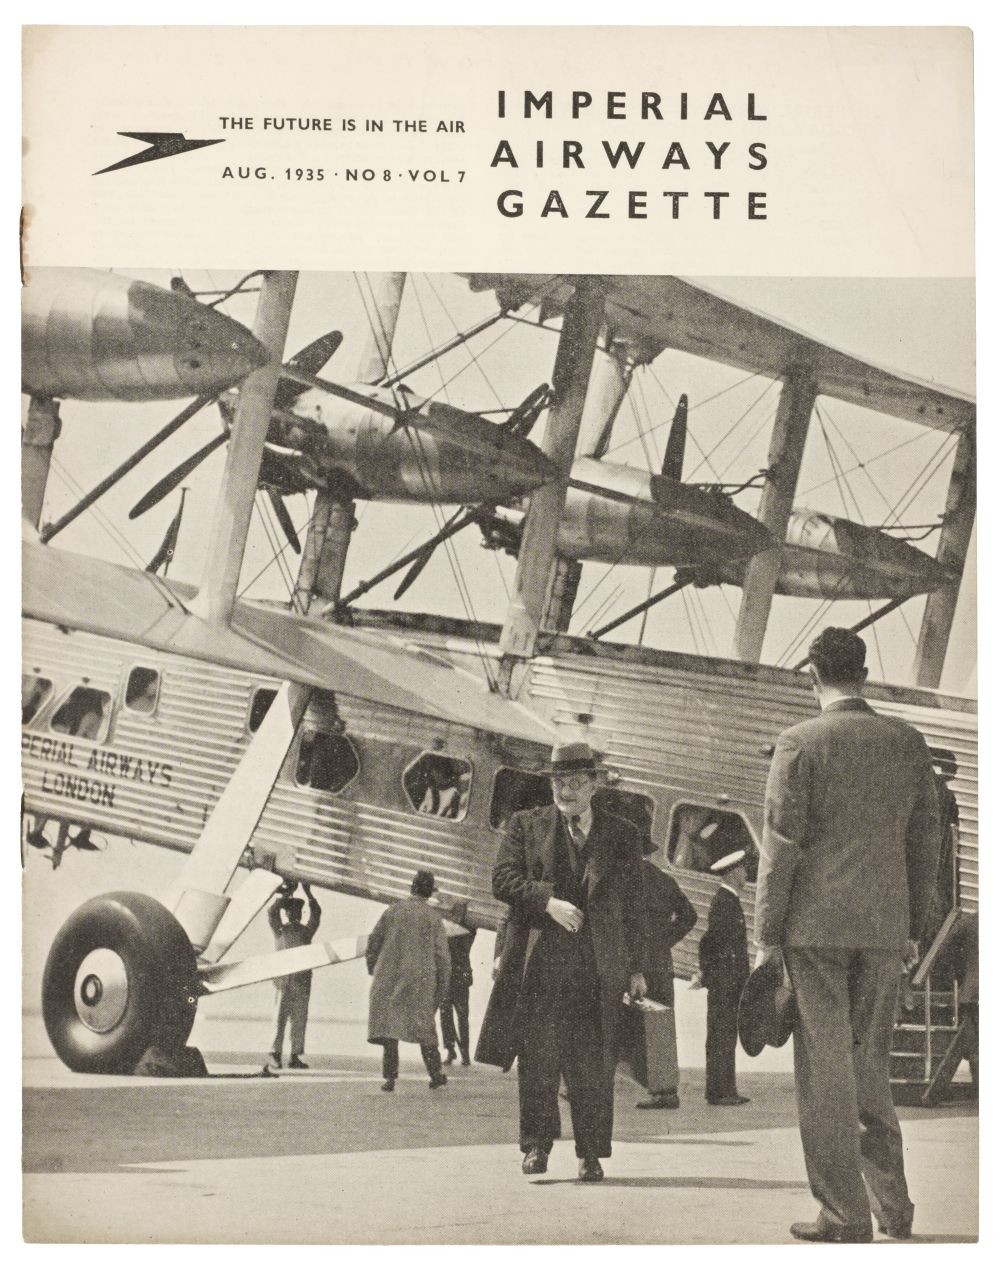 * Imperial Airways Gazette and other items